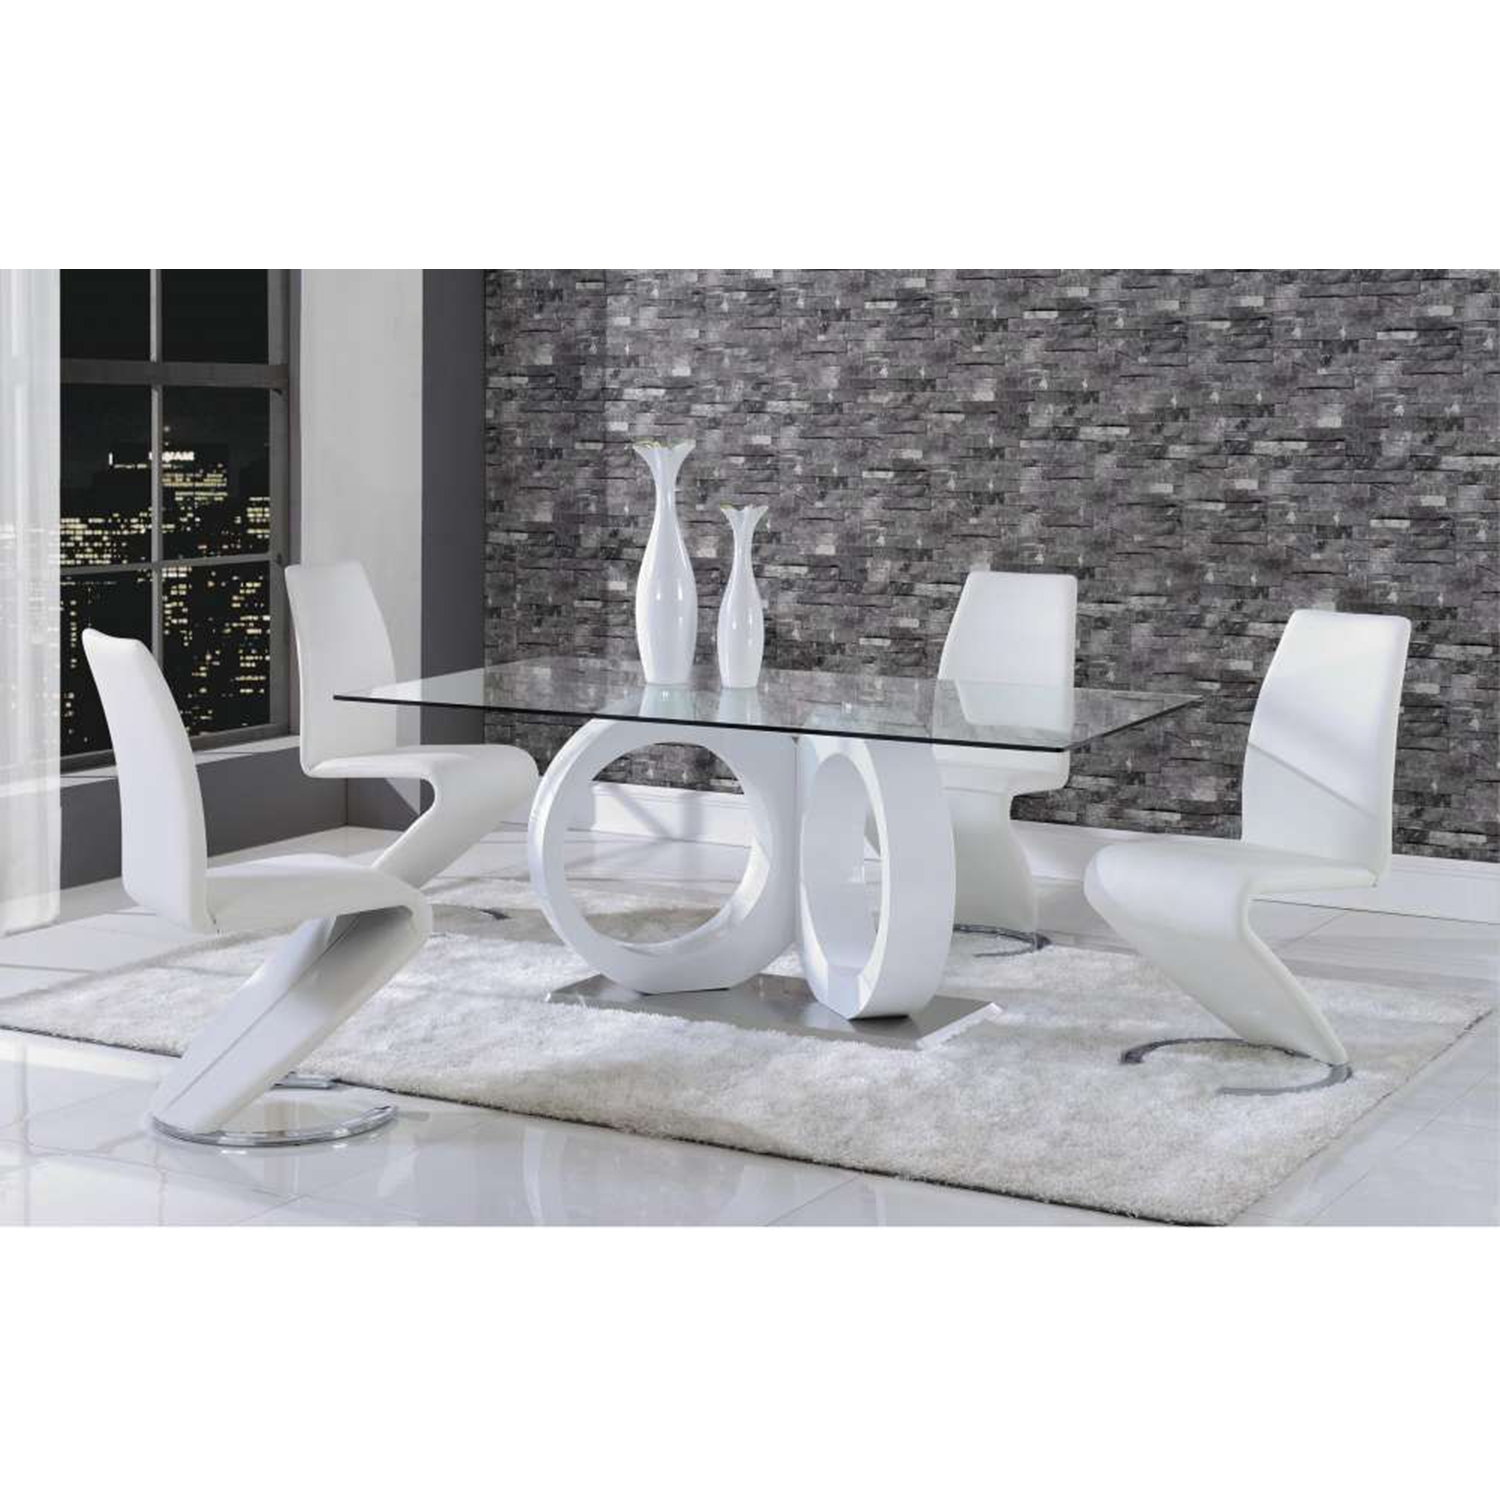 Skylar 5-Piece Dining Set with White Chairs - GLO-D9002DT-DC-WH-M-SET